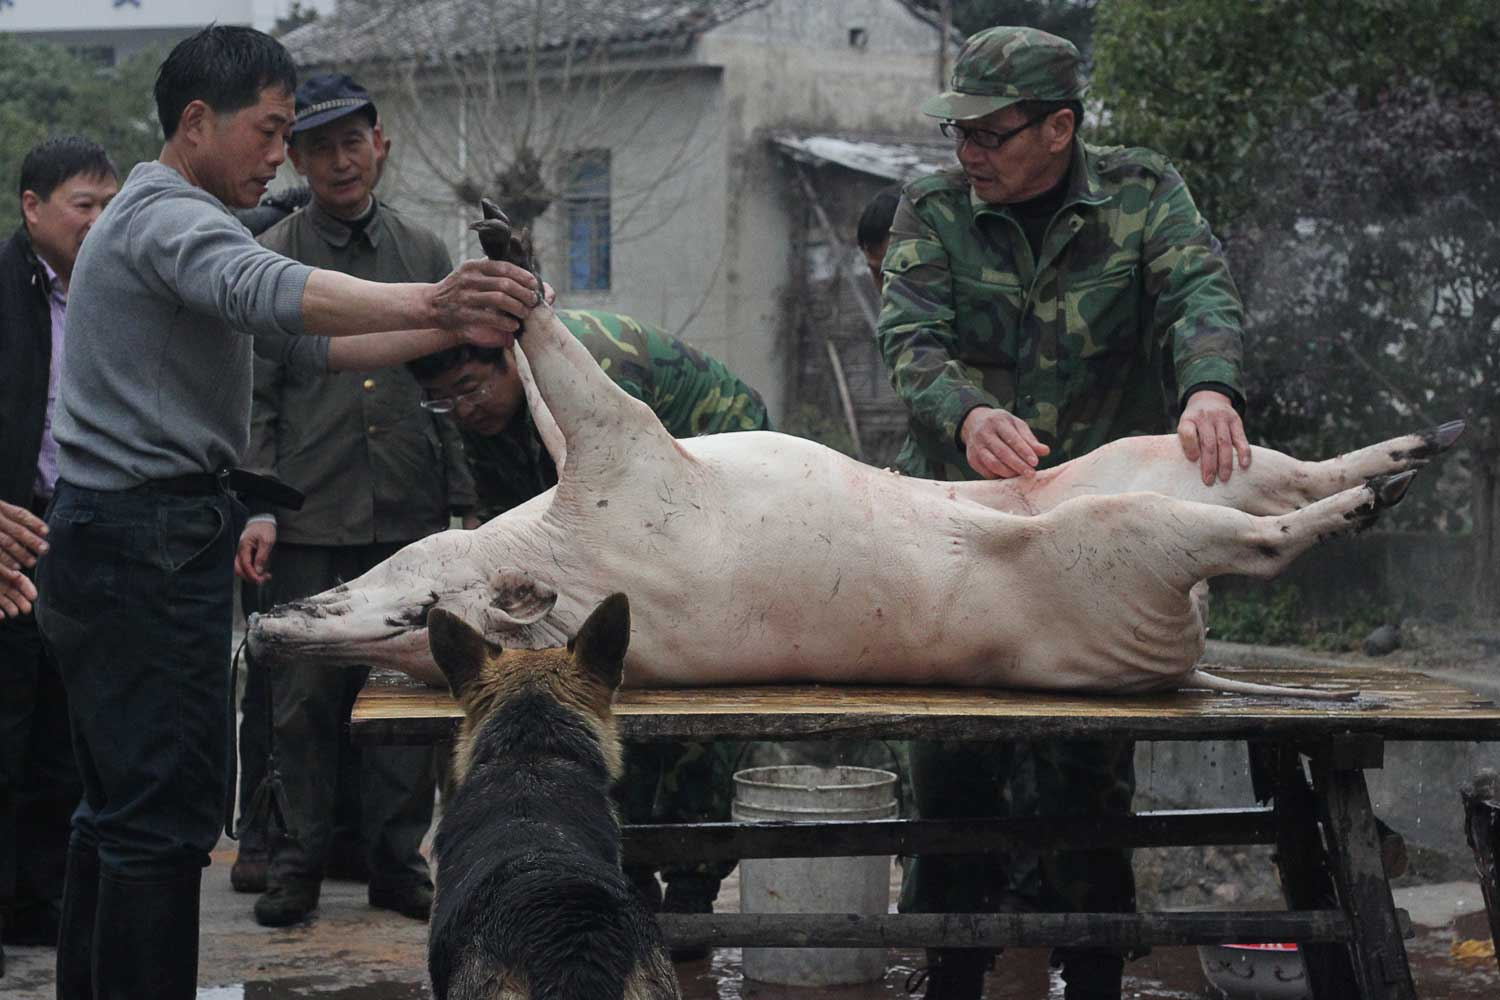 """""""Having spent years in kitchens across the world,I understand as much as any prep cook the basics of how to take apart an animal. The majority of those rules do not apply in rural mountainous China with a wild boar on a wooden-table-turned-carving-block in the middle of the village"""""""